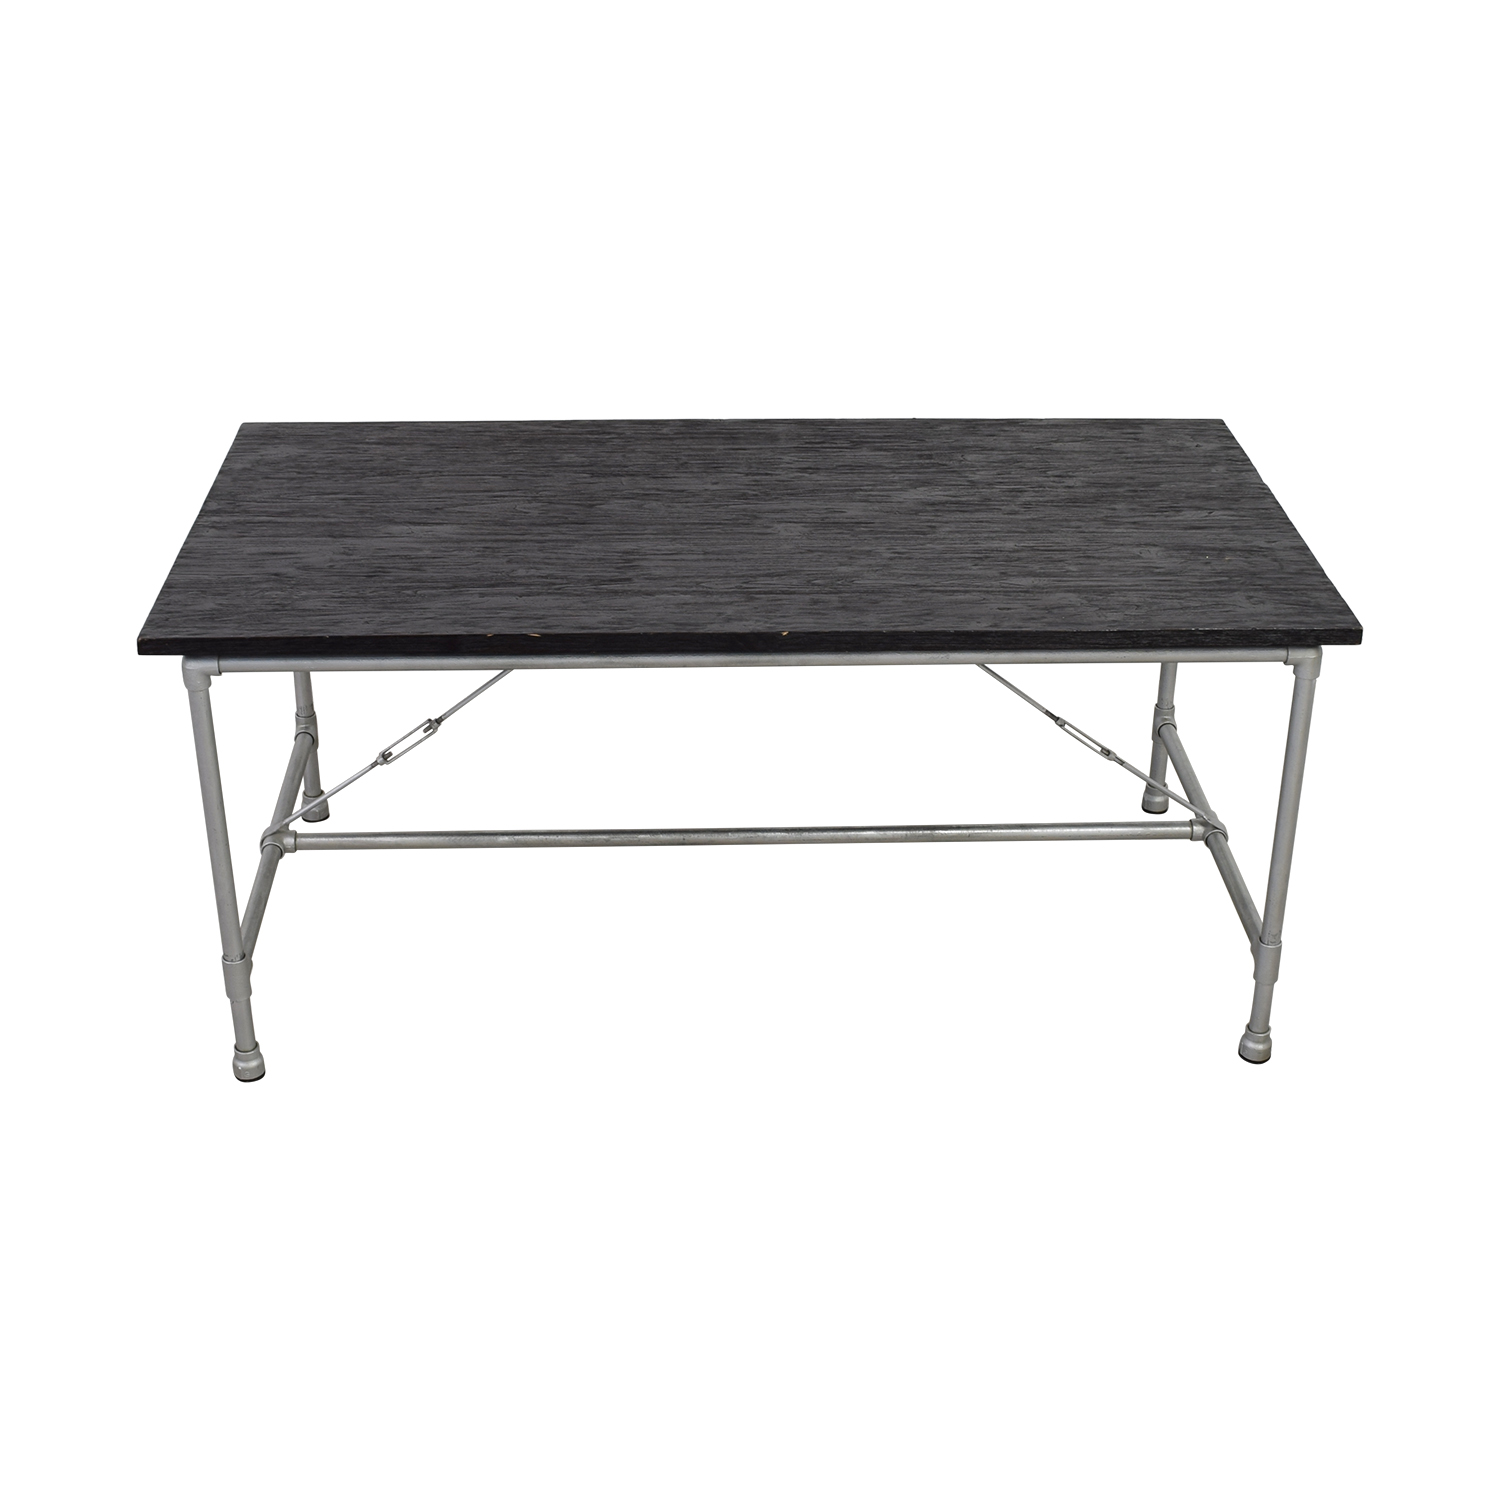 ABC Carpet & Home ABC Carpet & Home Black and Steel Table dimensions